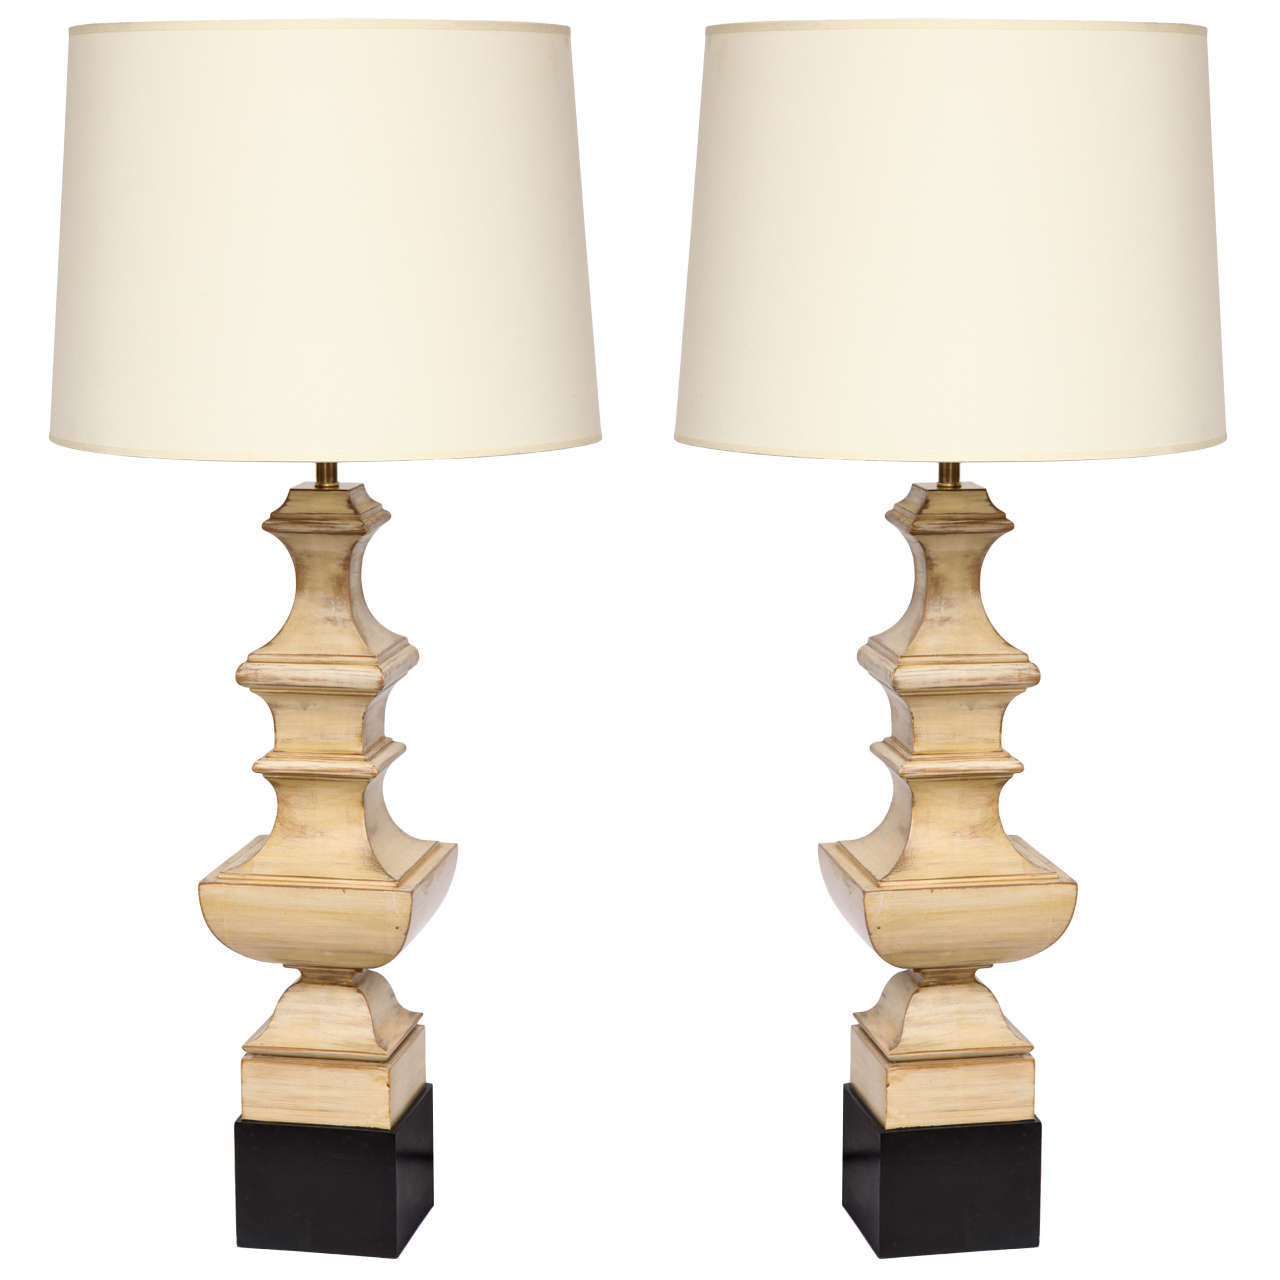 Pair of 1940s Art Moderne Table Lamps